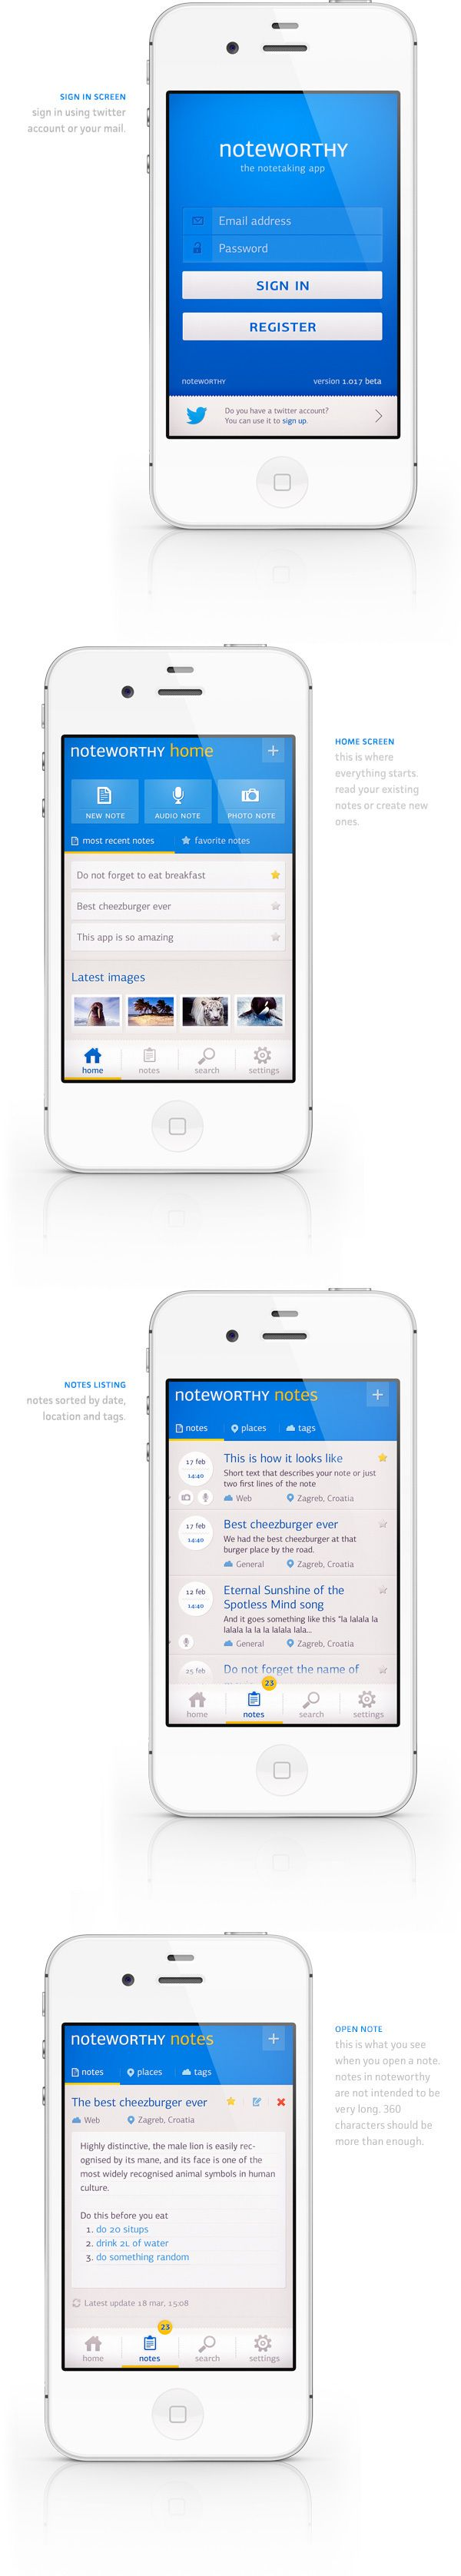 Noteworthy app concept by Ante Matijaca, via Behance